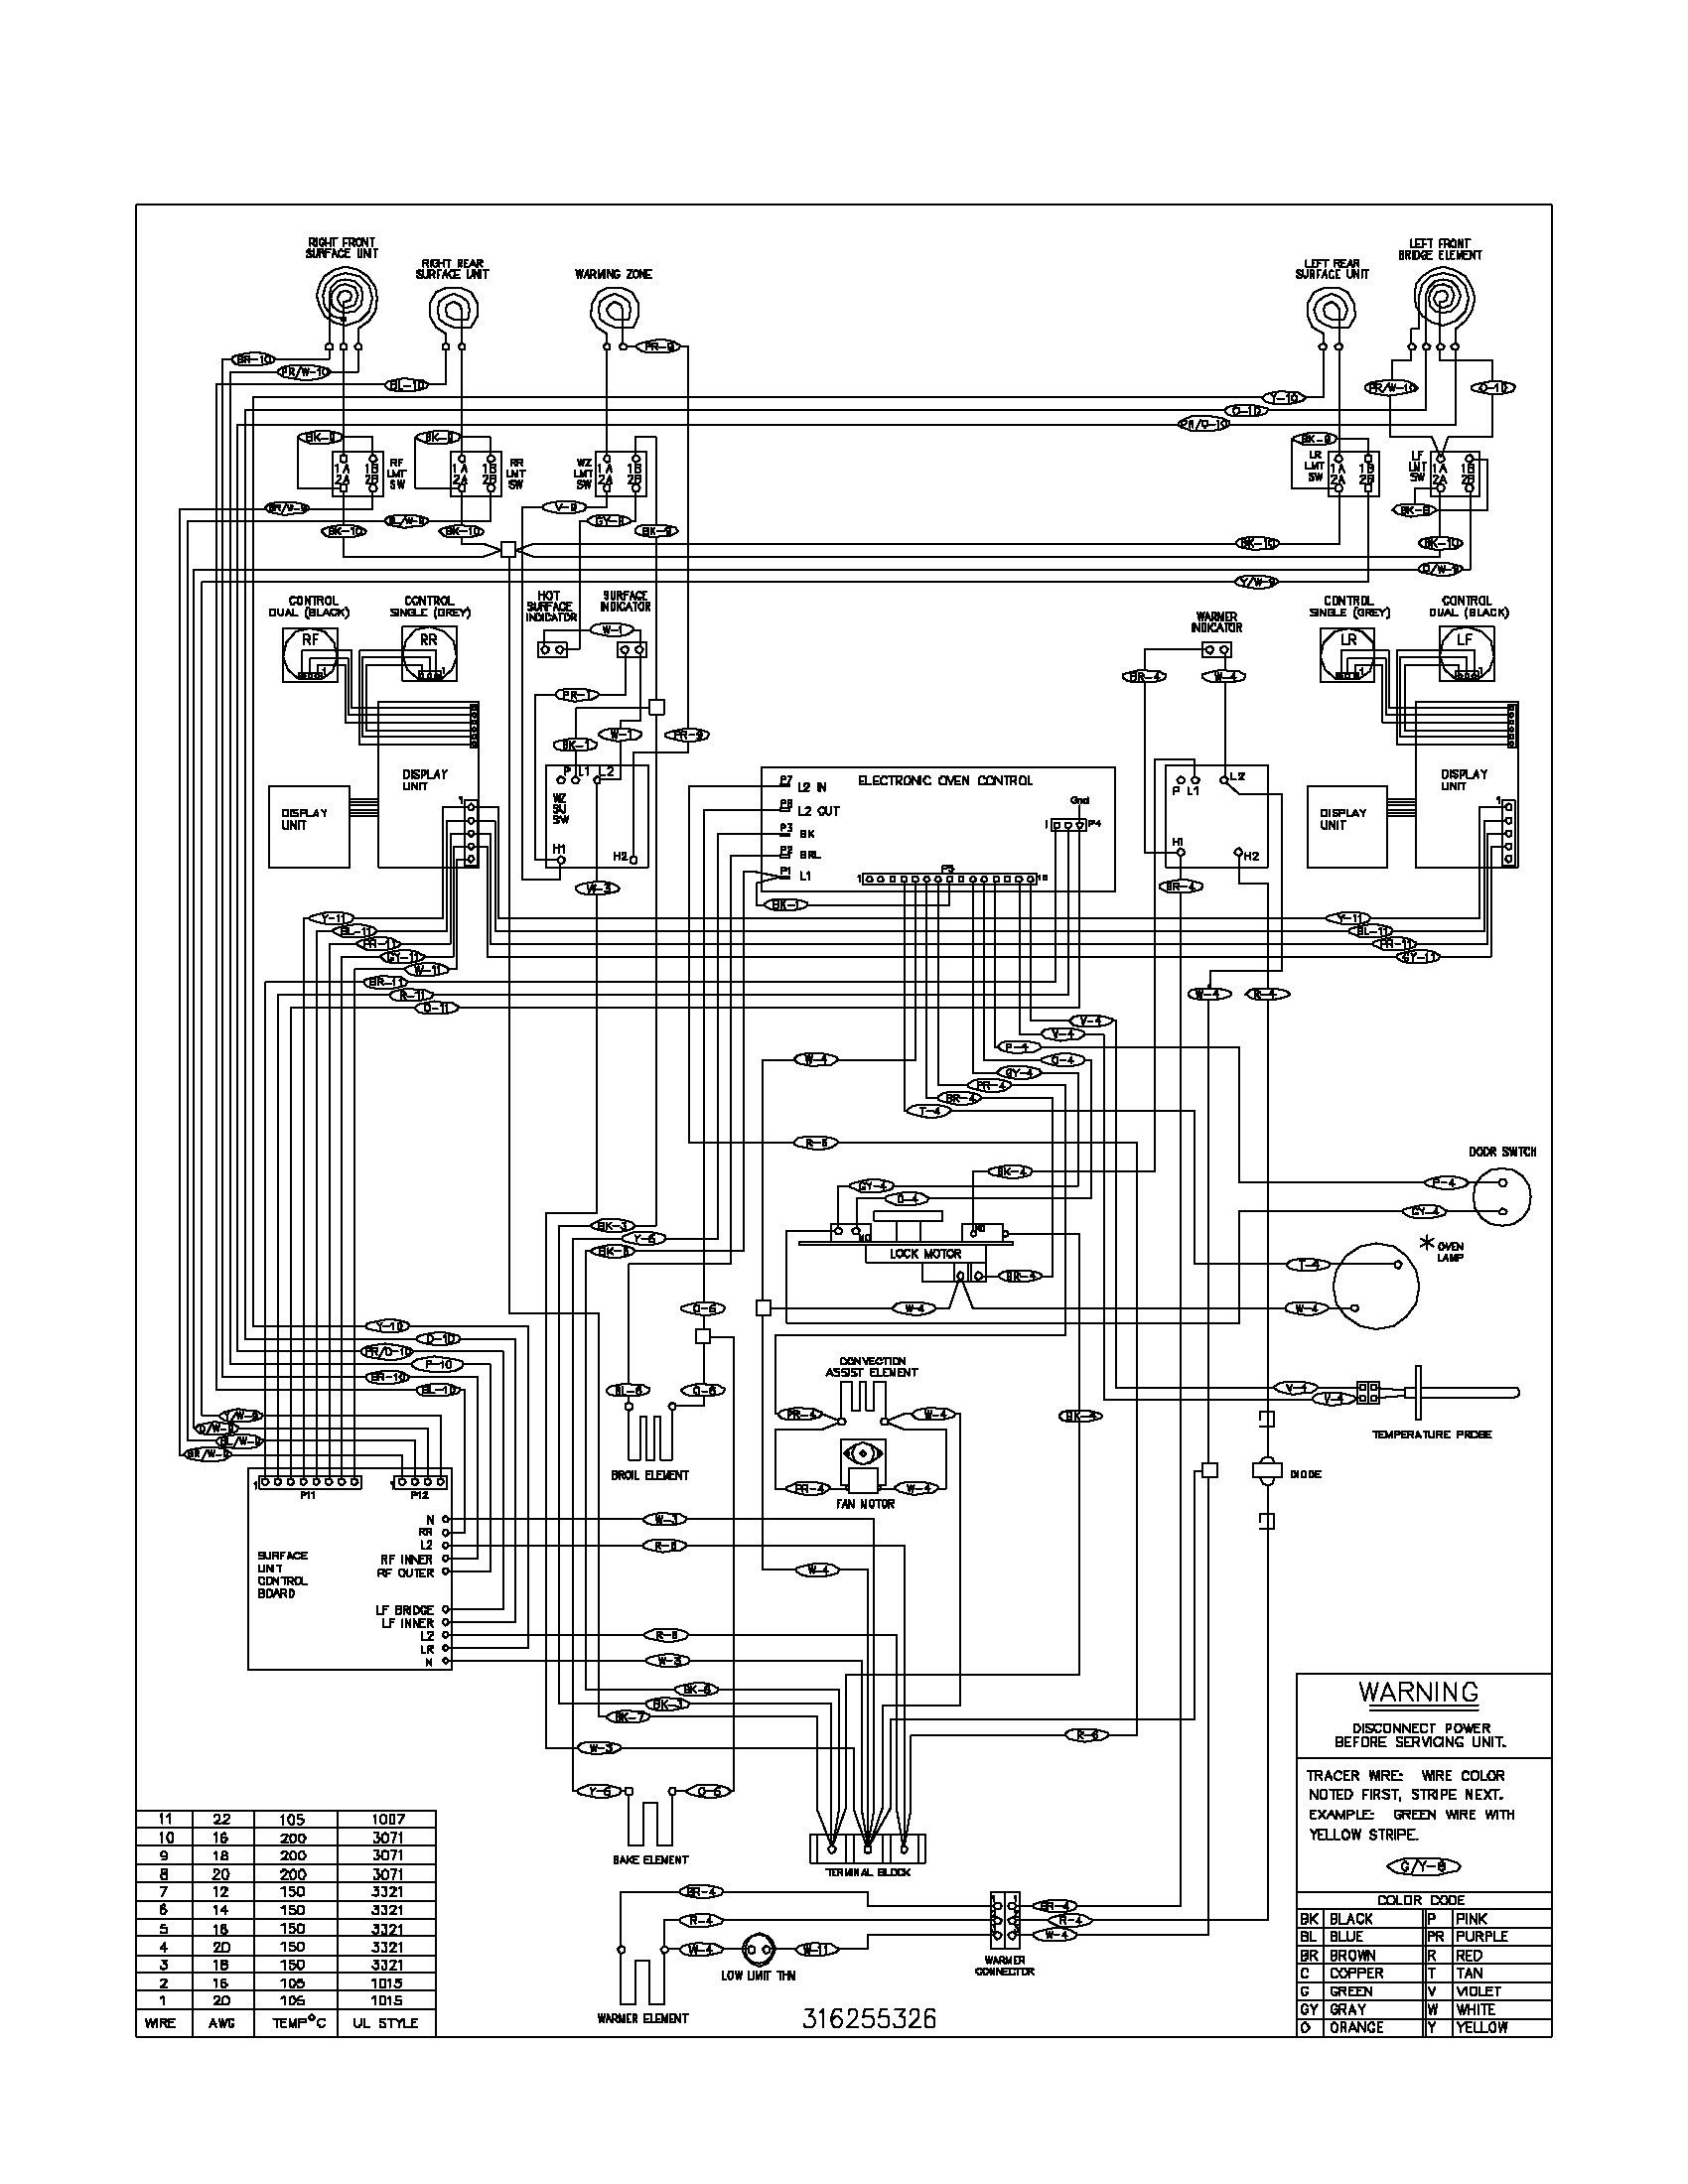 E2Eb-015Ha Wiring Diagram from i.pinimg.com